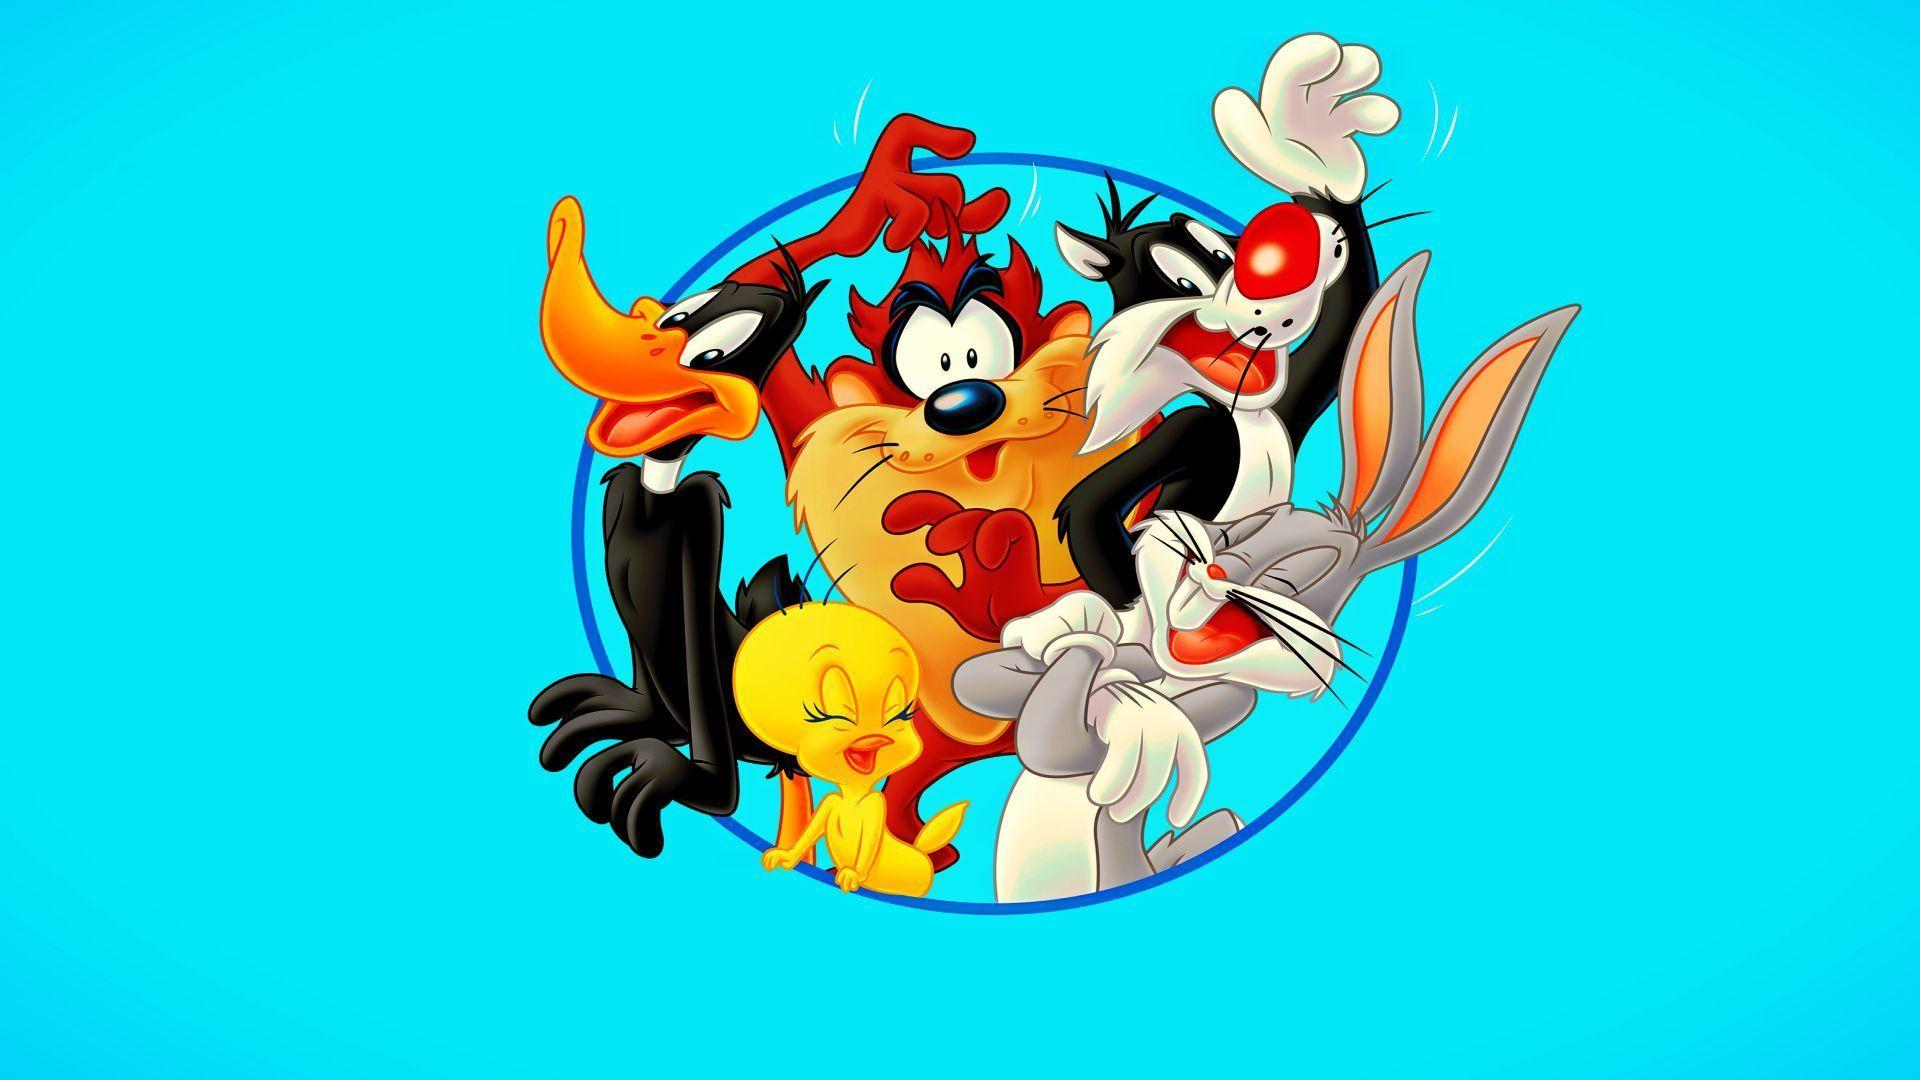 Looney Tunes Characters Wallpapers - Wallpaper Cave